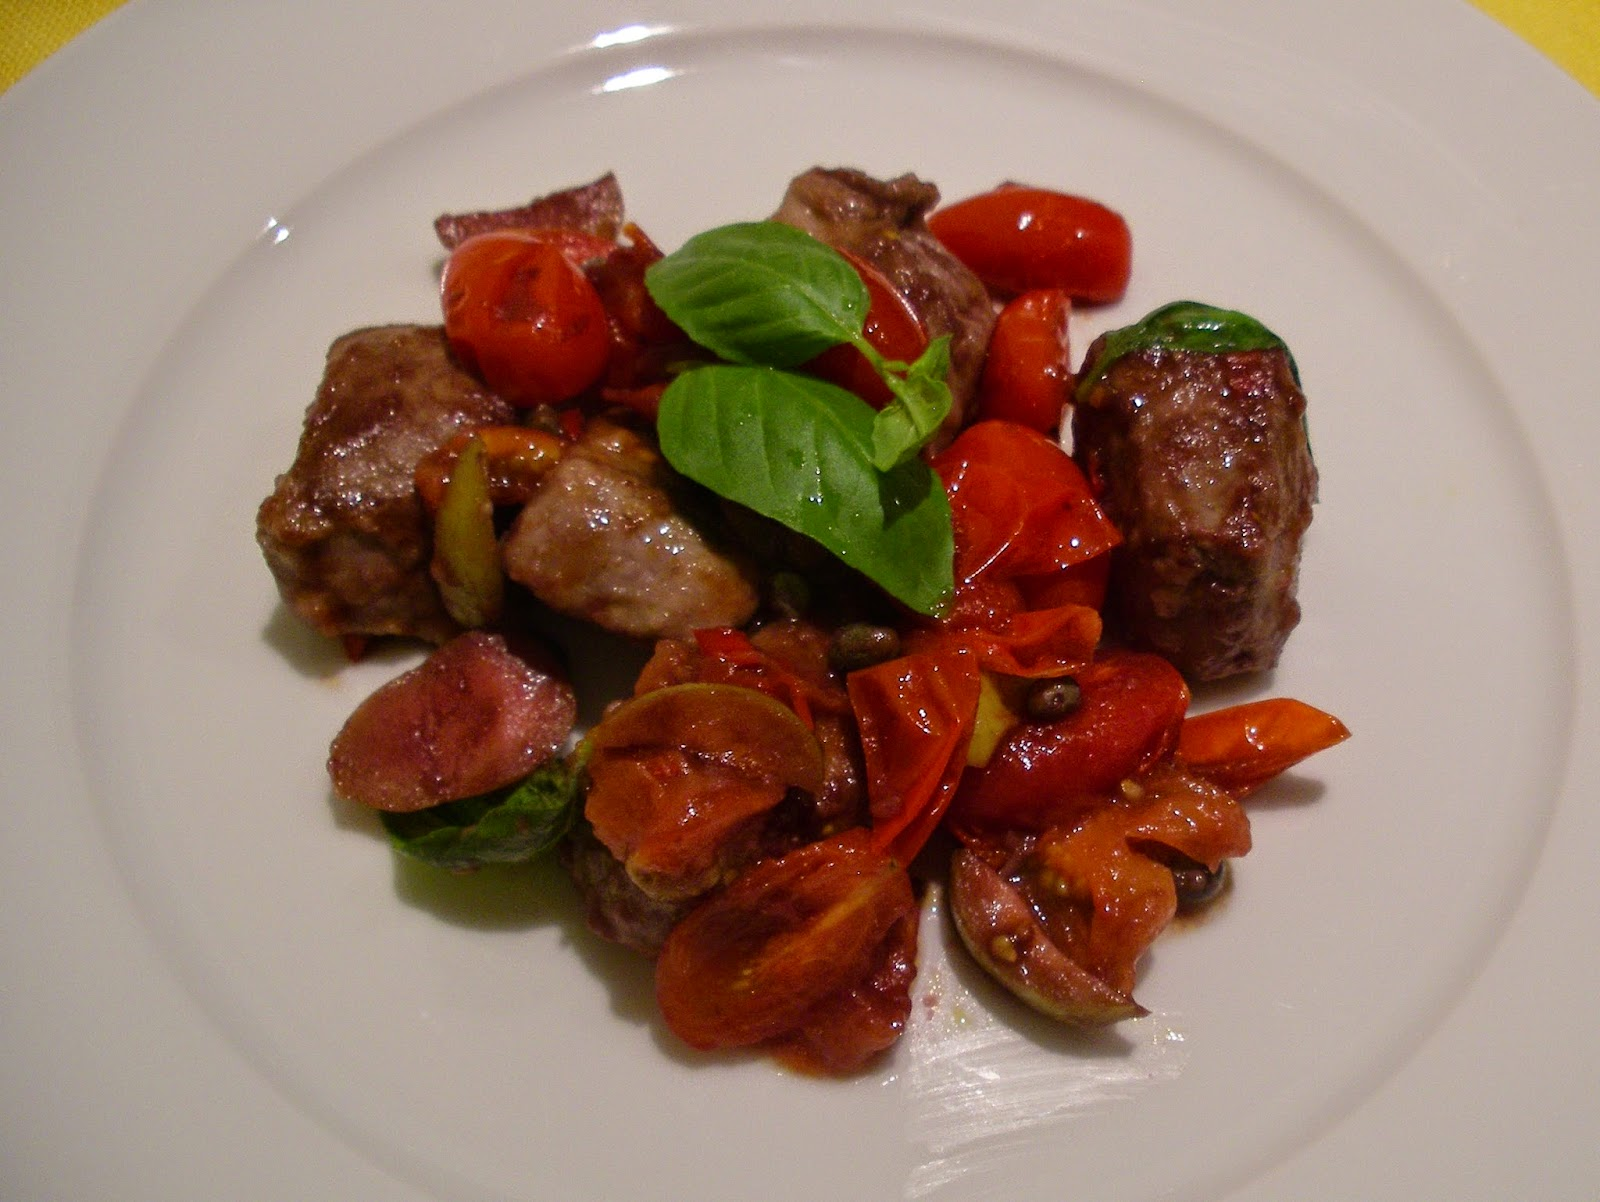 Stir-fried sirloin beef with cherry tomatoes, green olives and capers